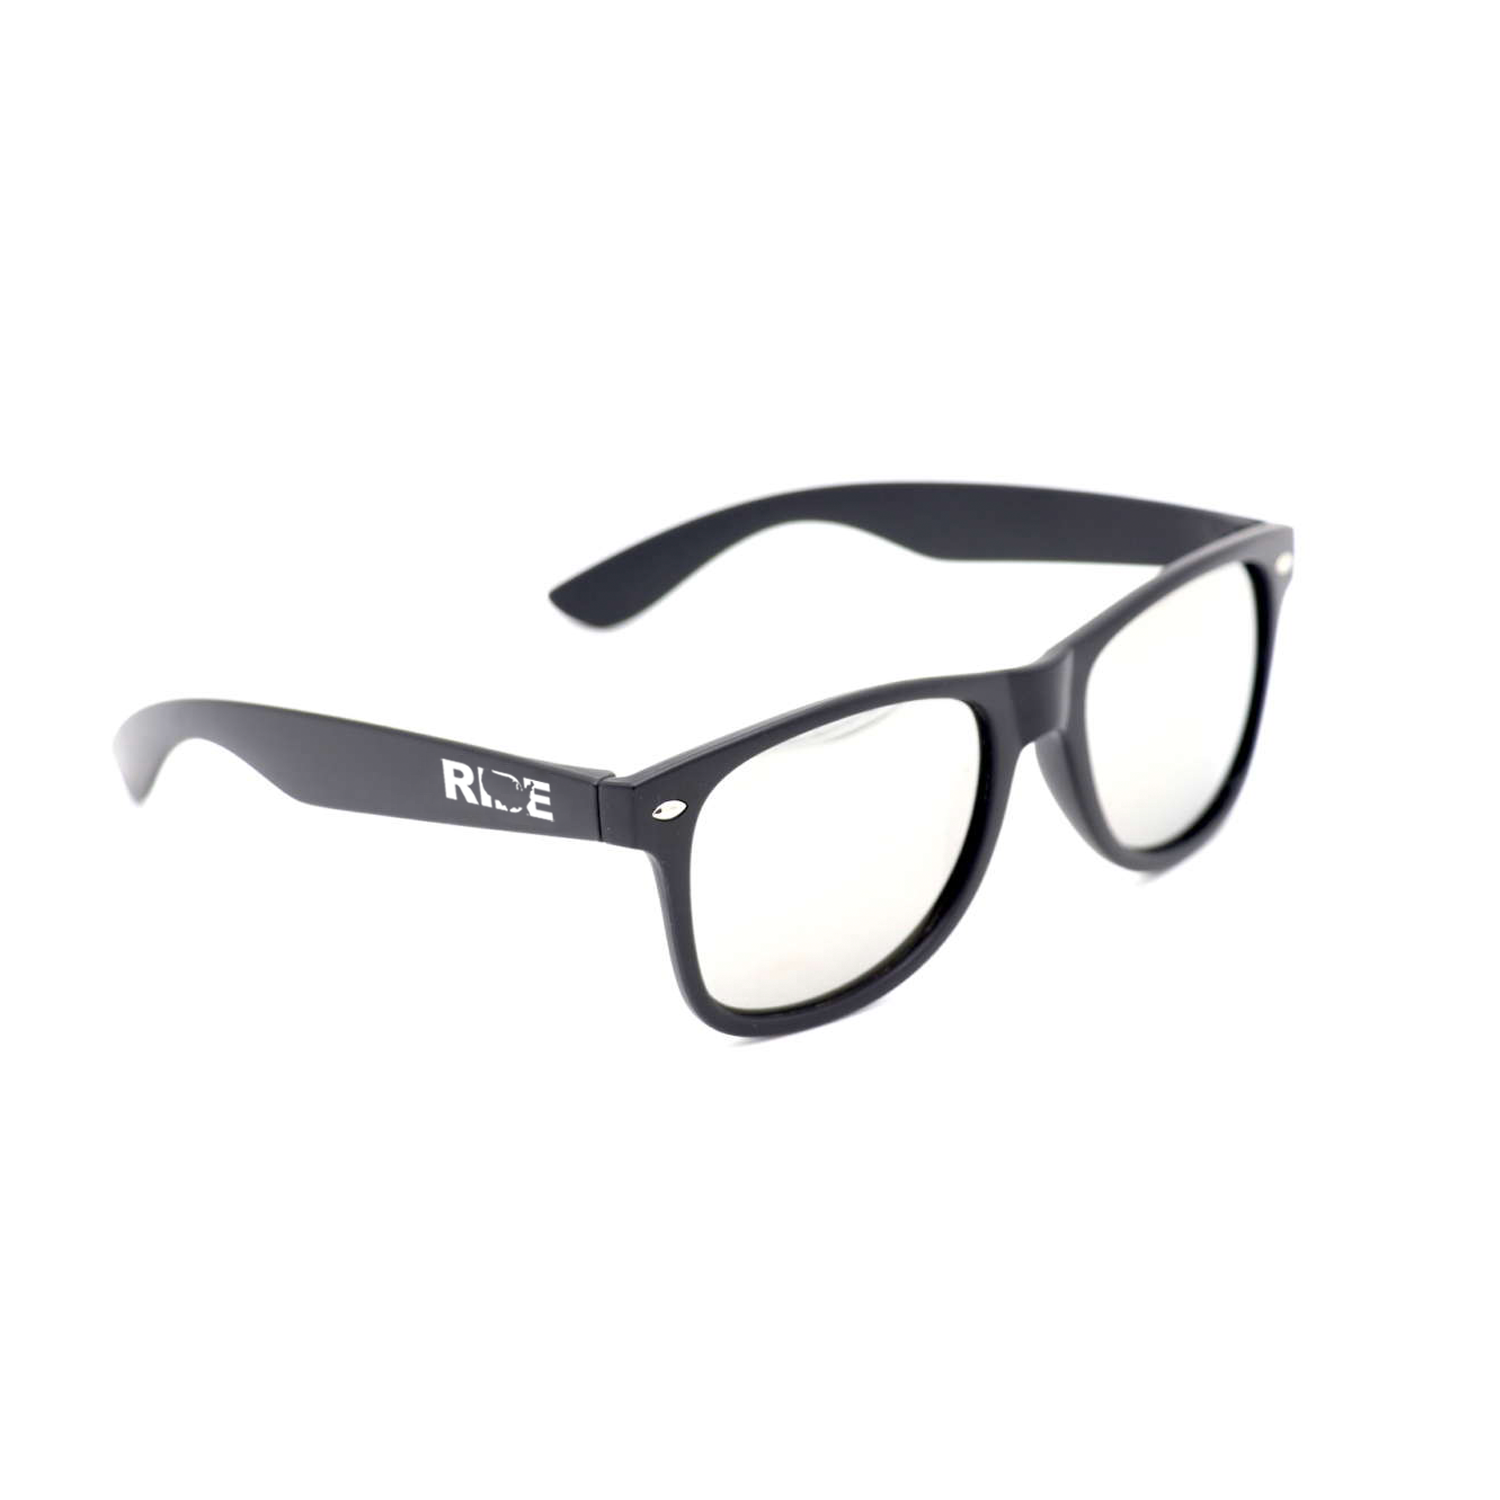 Ride United States Classic Sunglasses Black